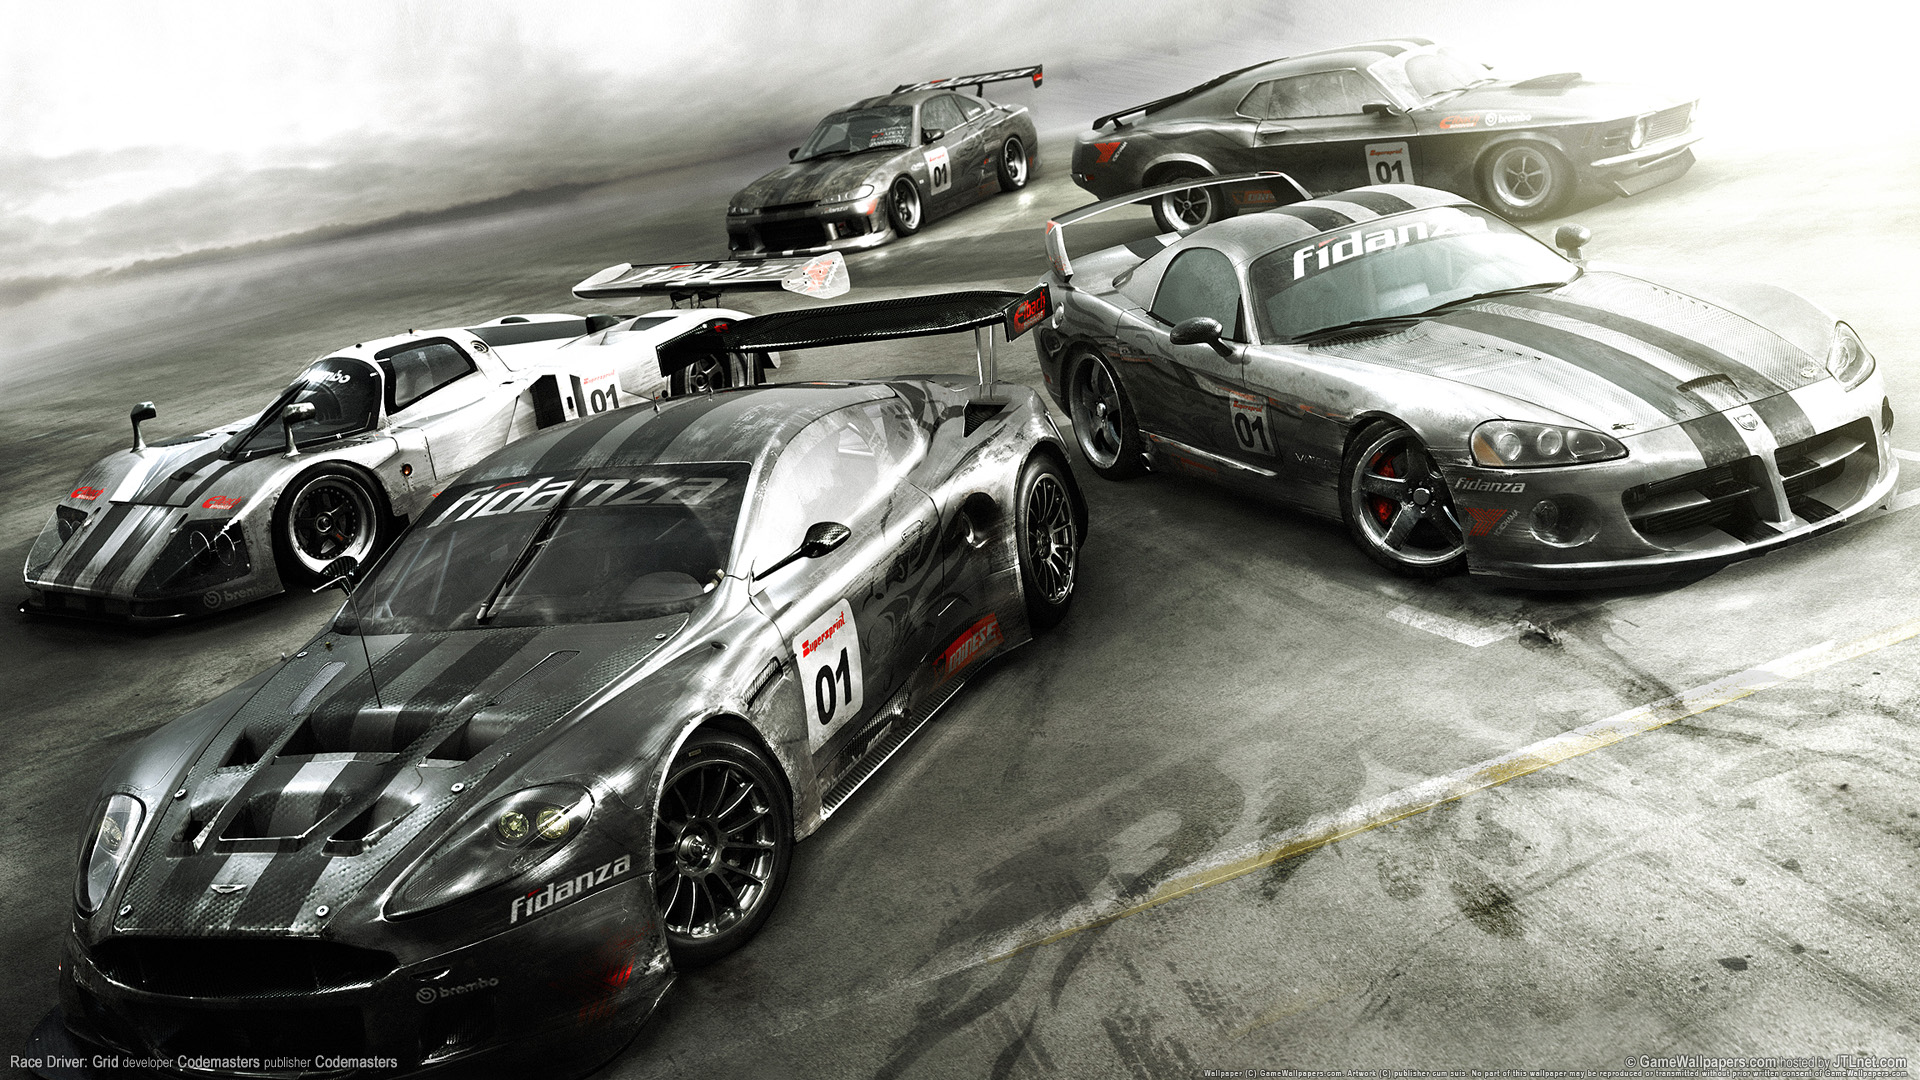 HD Wallpapers Race Driver Grid